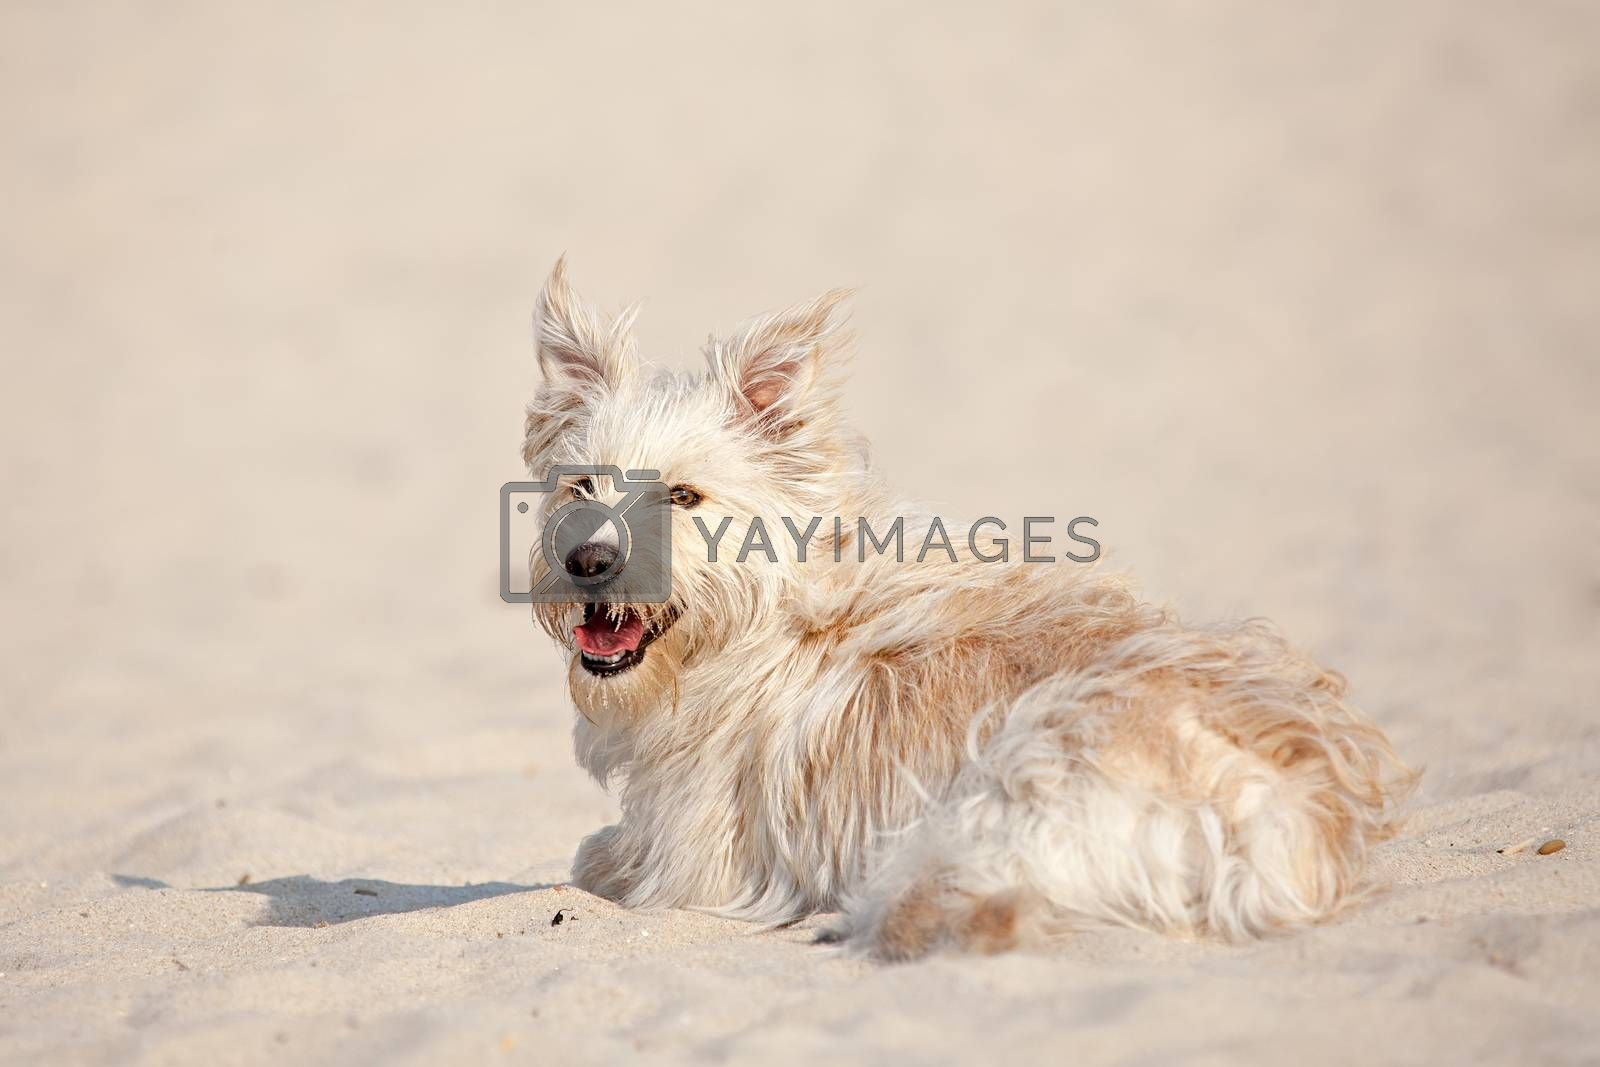 Golden dog at the beach by ajn